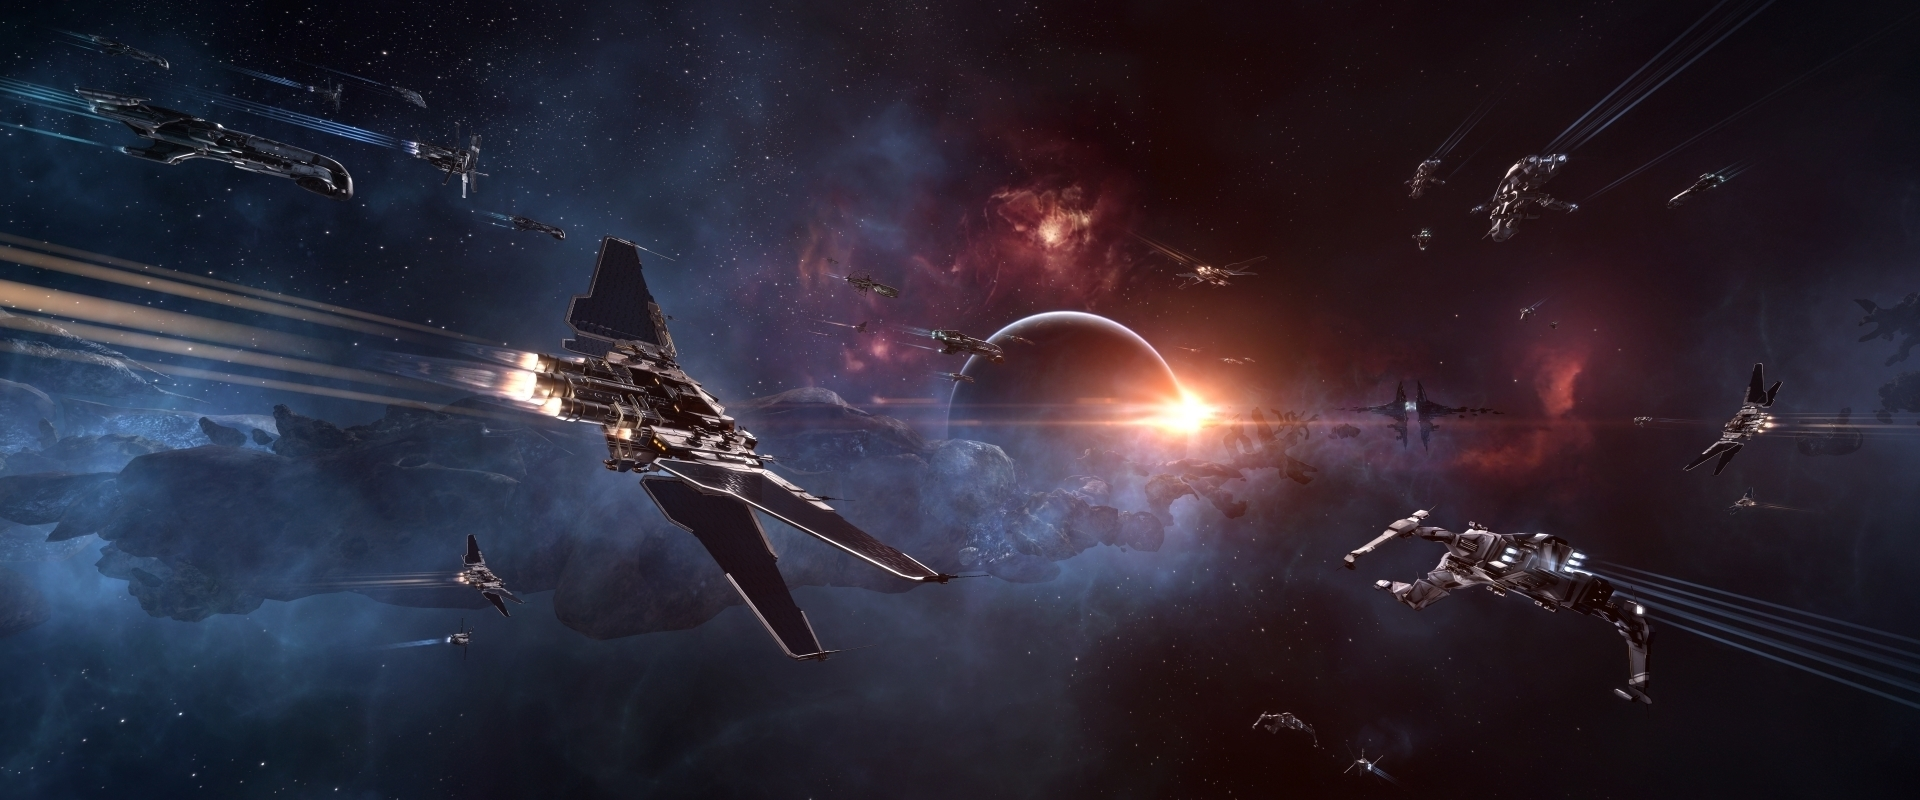 PG] Eve Online Players Are So Fed Up With Cheaters They're